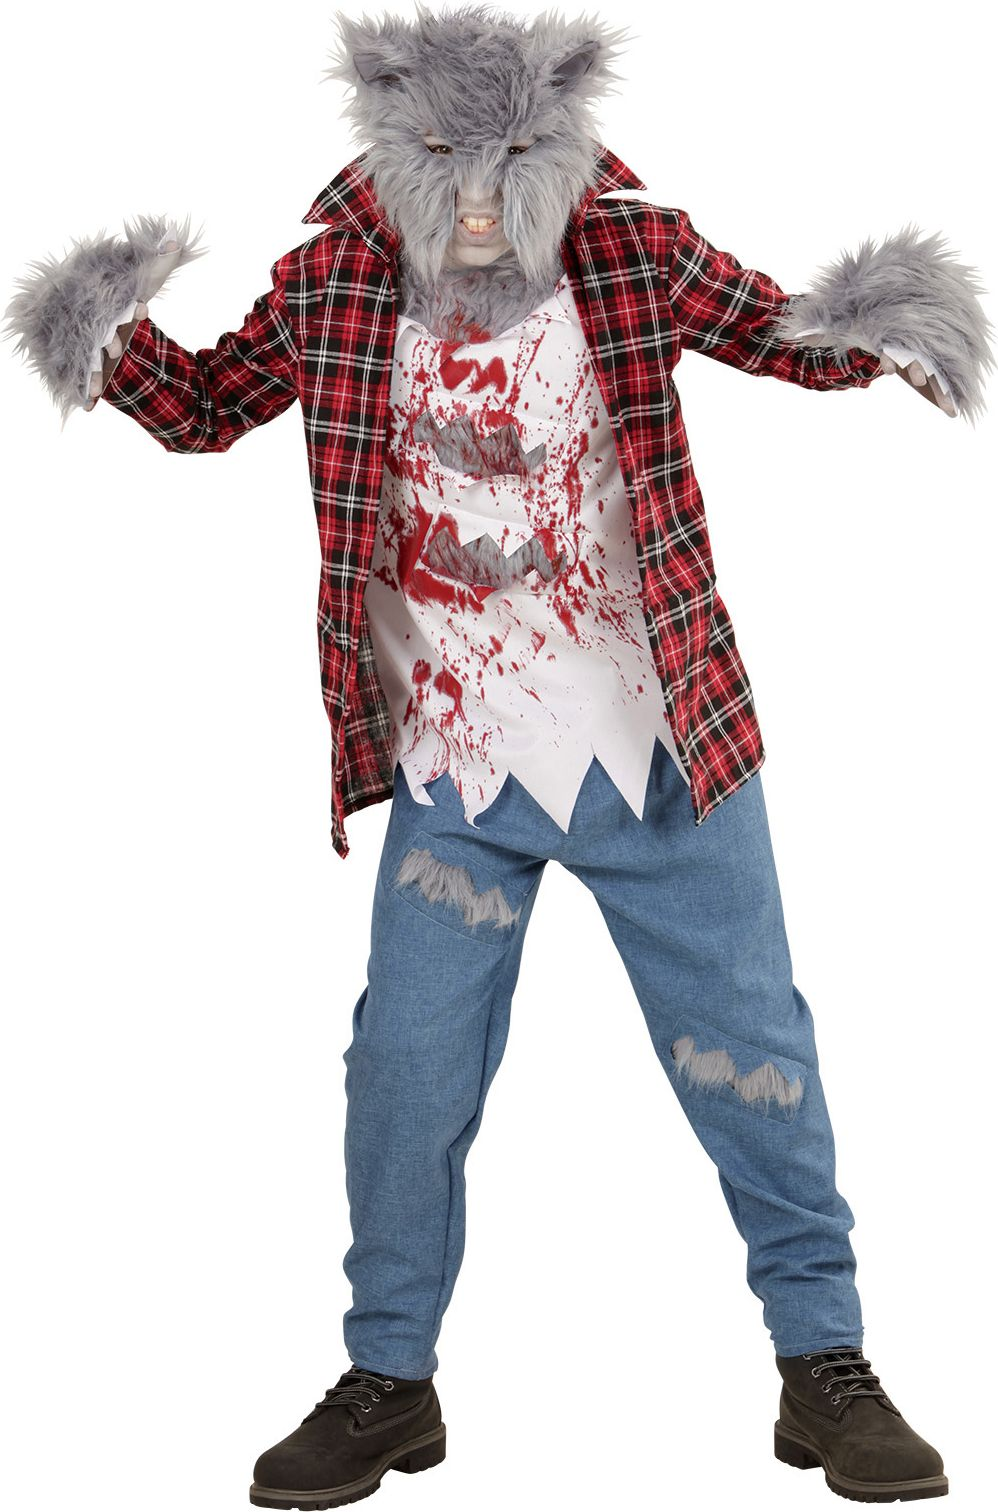 Weerwolf halloween kind